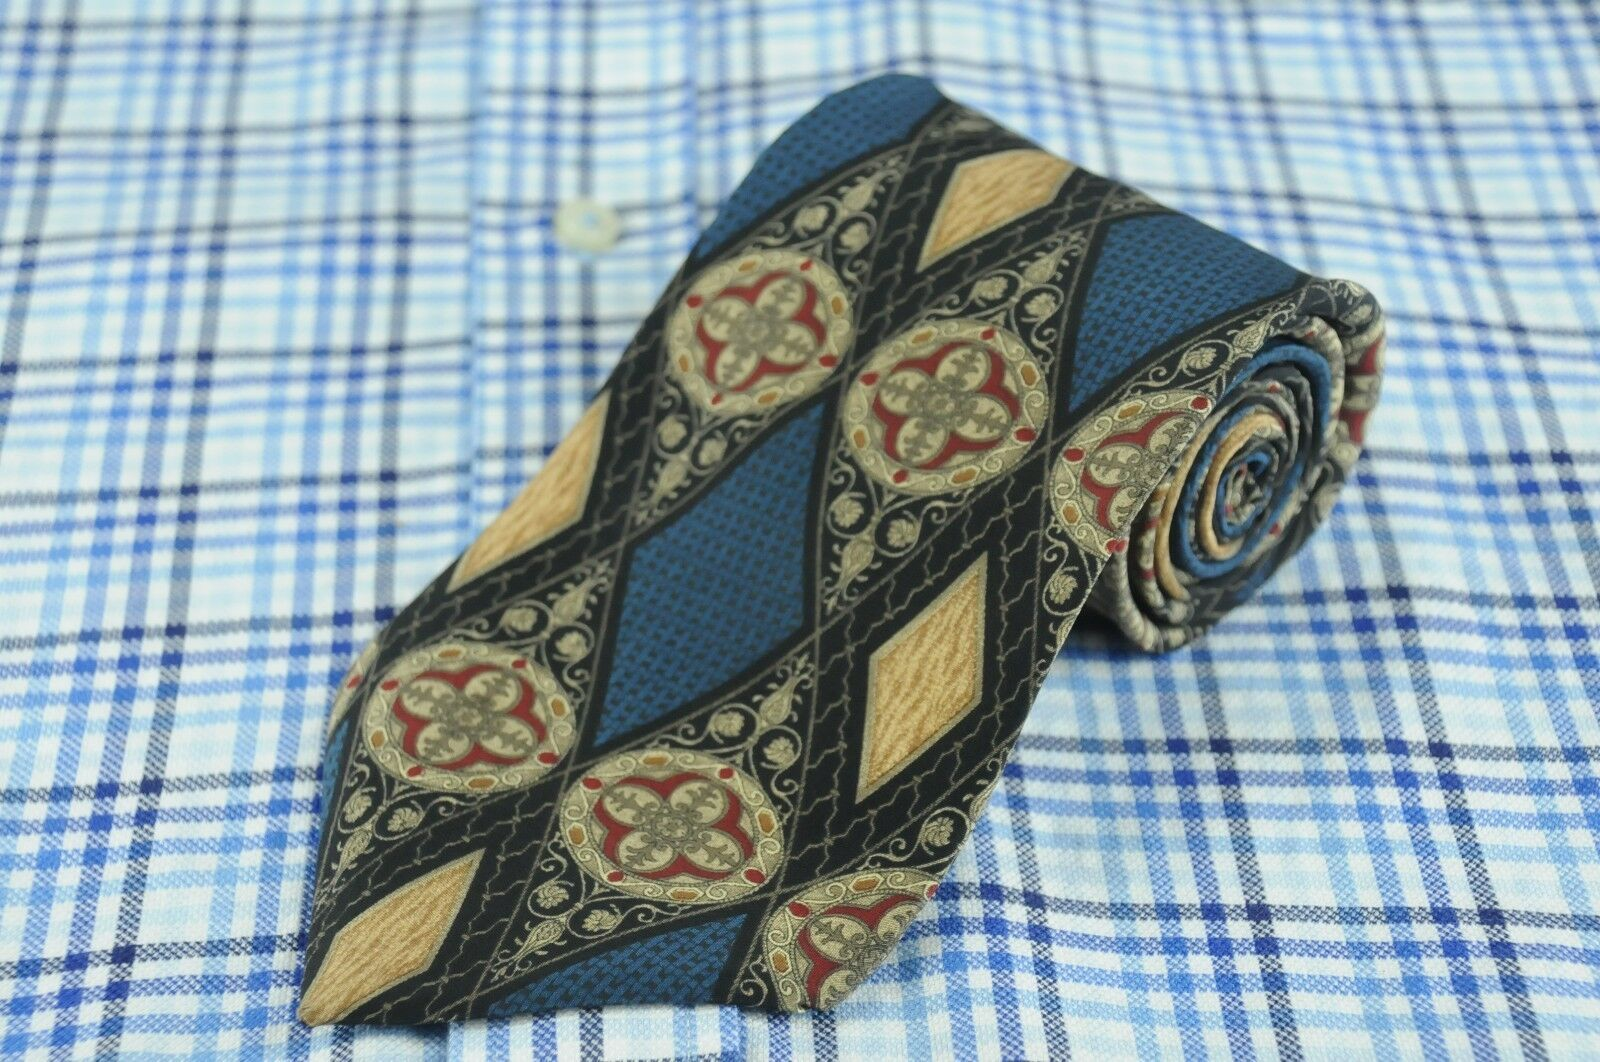 Primary image for Bill Blass Men's Blue Victorian Geometric Printed Silk Necktie 56 x 3.5 in.